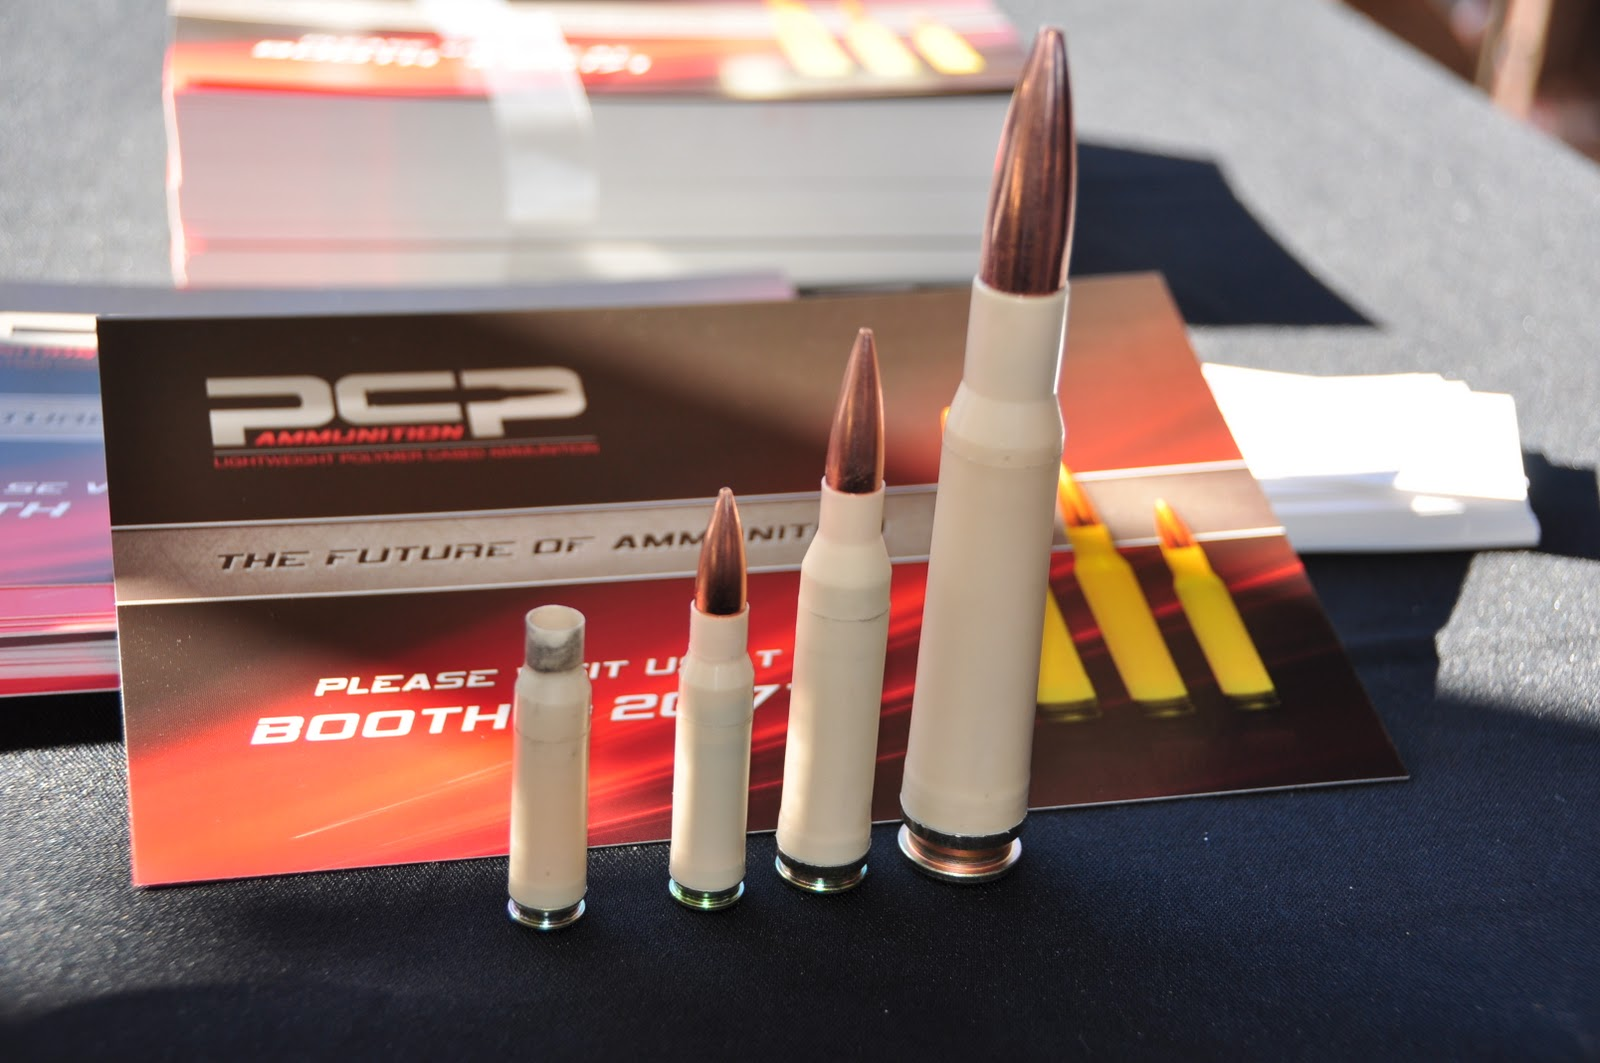 "<!--:en-->PCP Ammunition Polymer-Cased Rifle/Machine Gun Ammo for Military Combat and Civilian Tactical/Commercial Applications: Has the Era of High-Heat-Resistant ""Superplastic""/""Superpolymer"" Cartridge Cases Finally Arrived? <!--:-->"